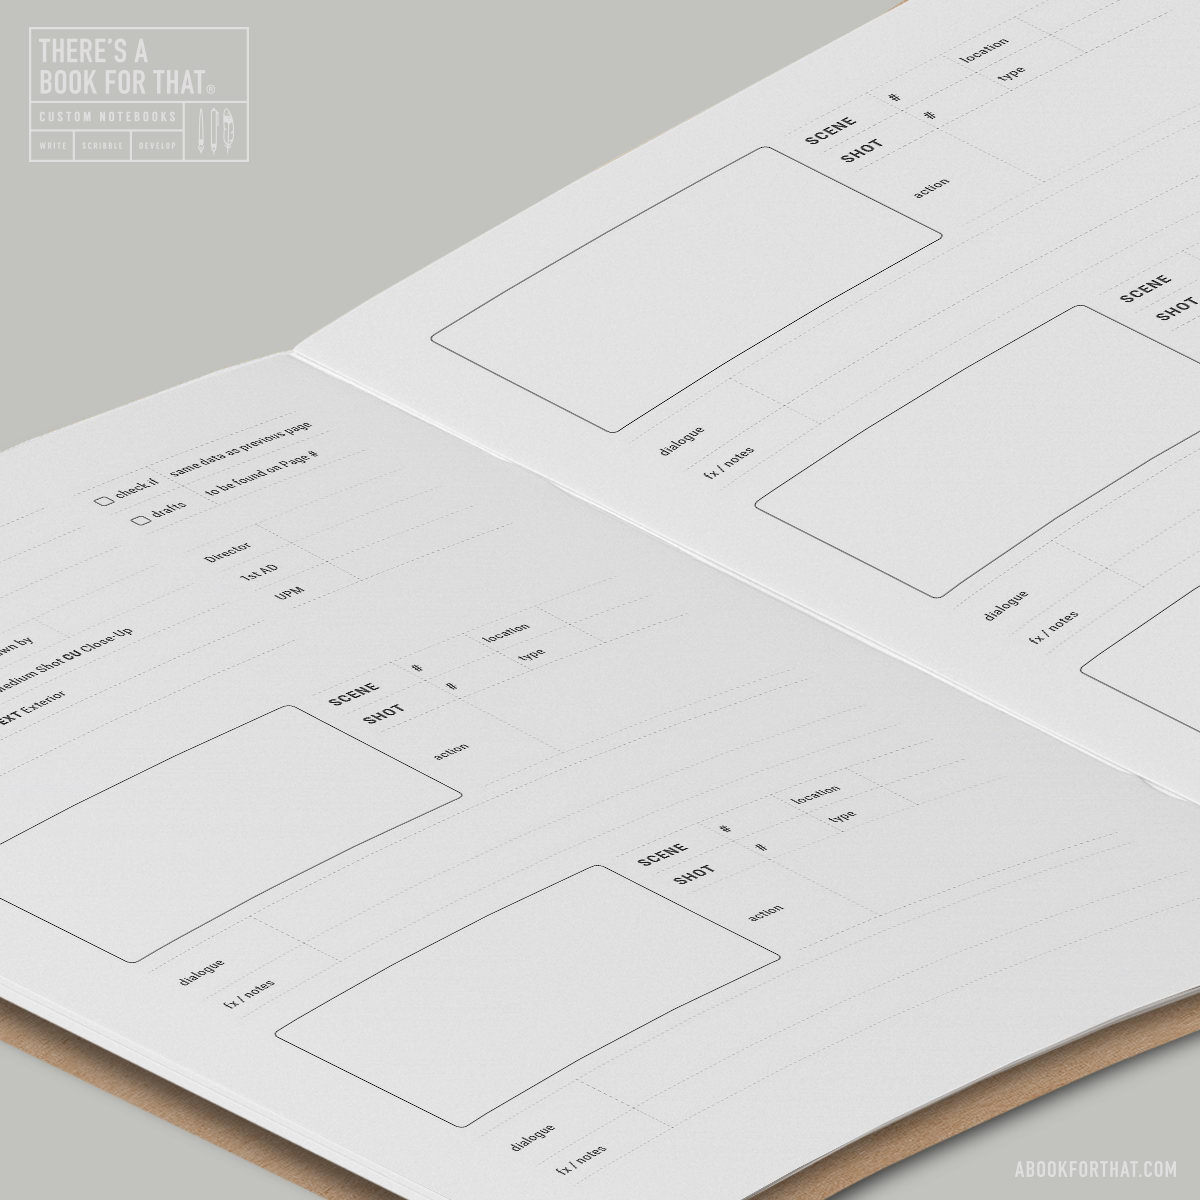 B-117_Storyboard-Notebook_Details1